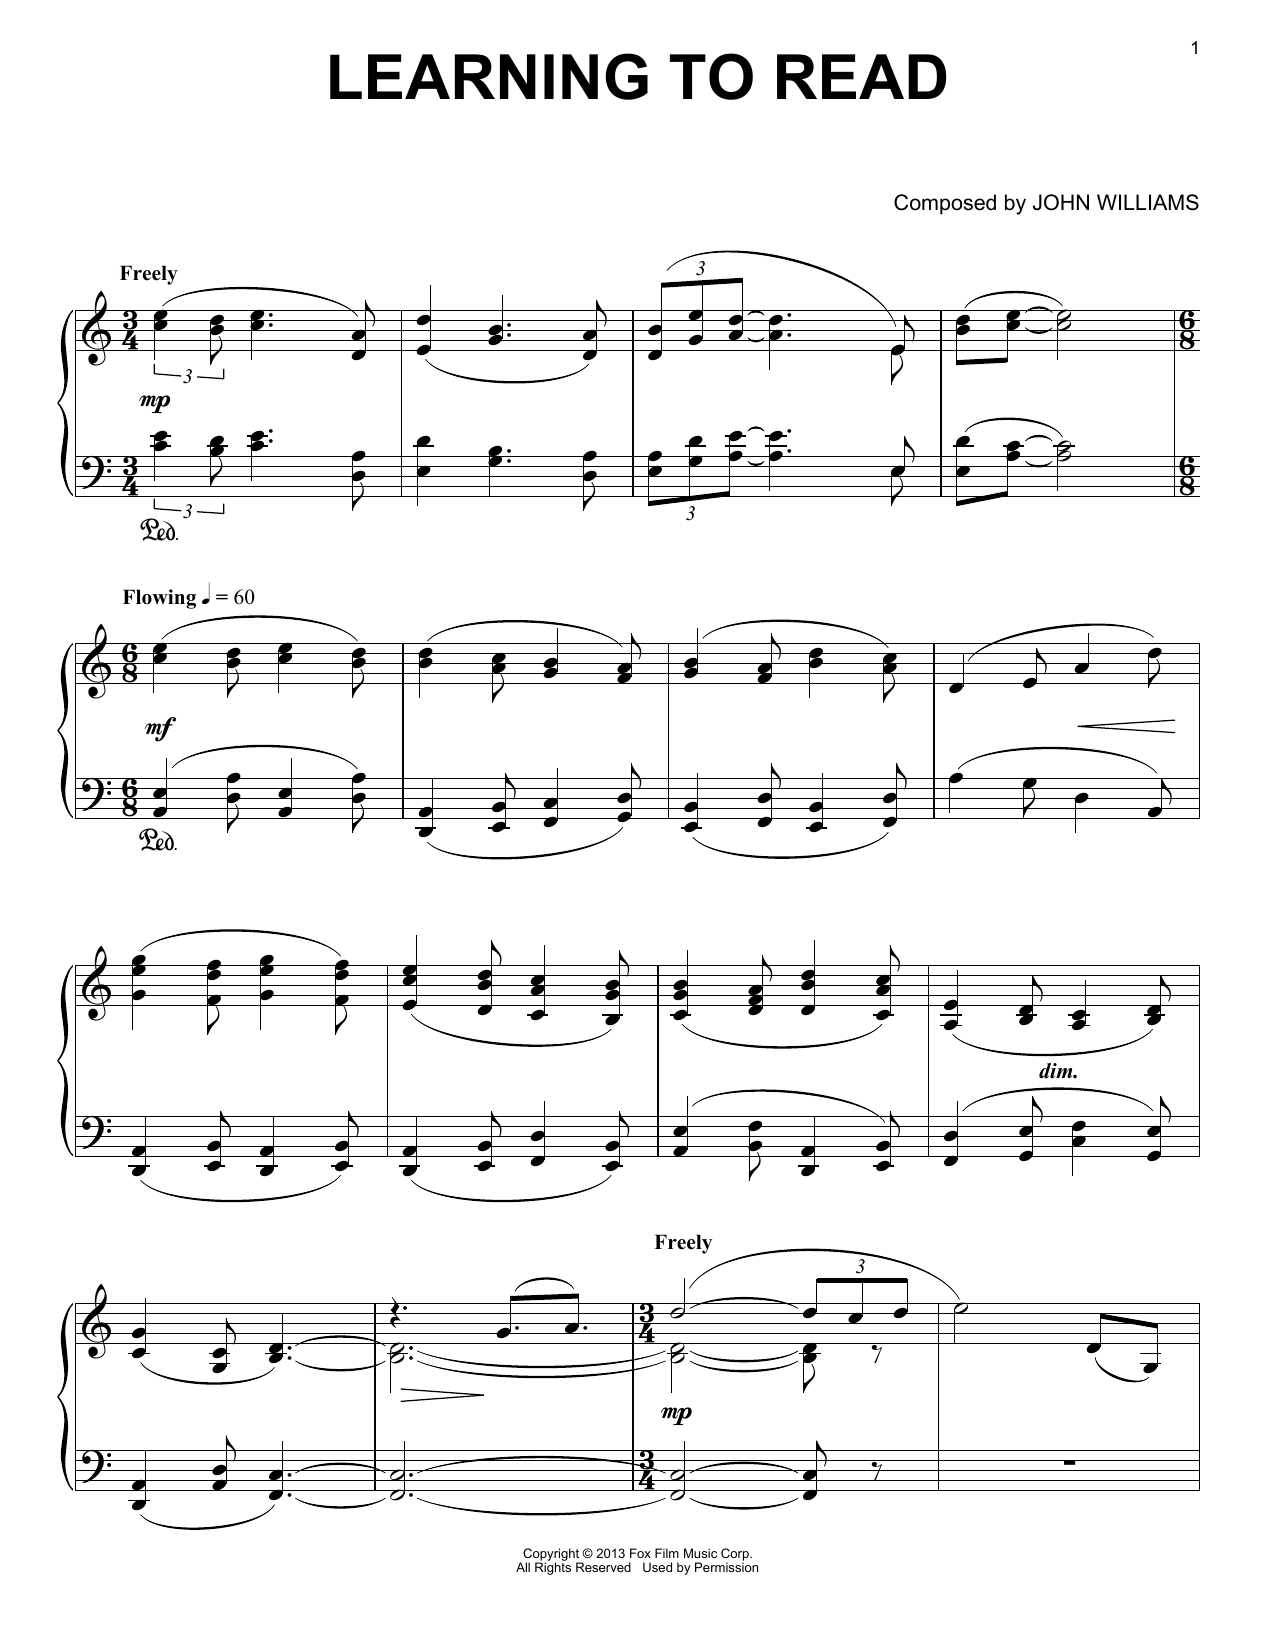 How To Read Sheet Music For Piano – Music Theory Academy